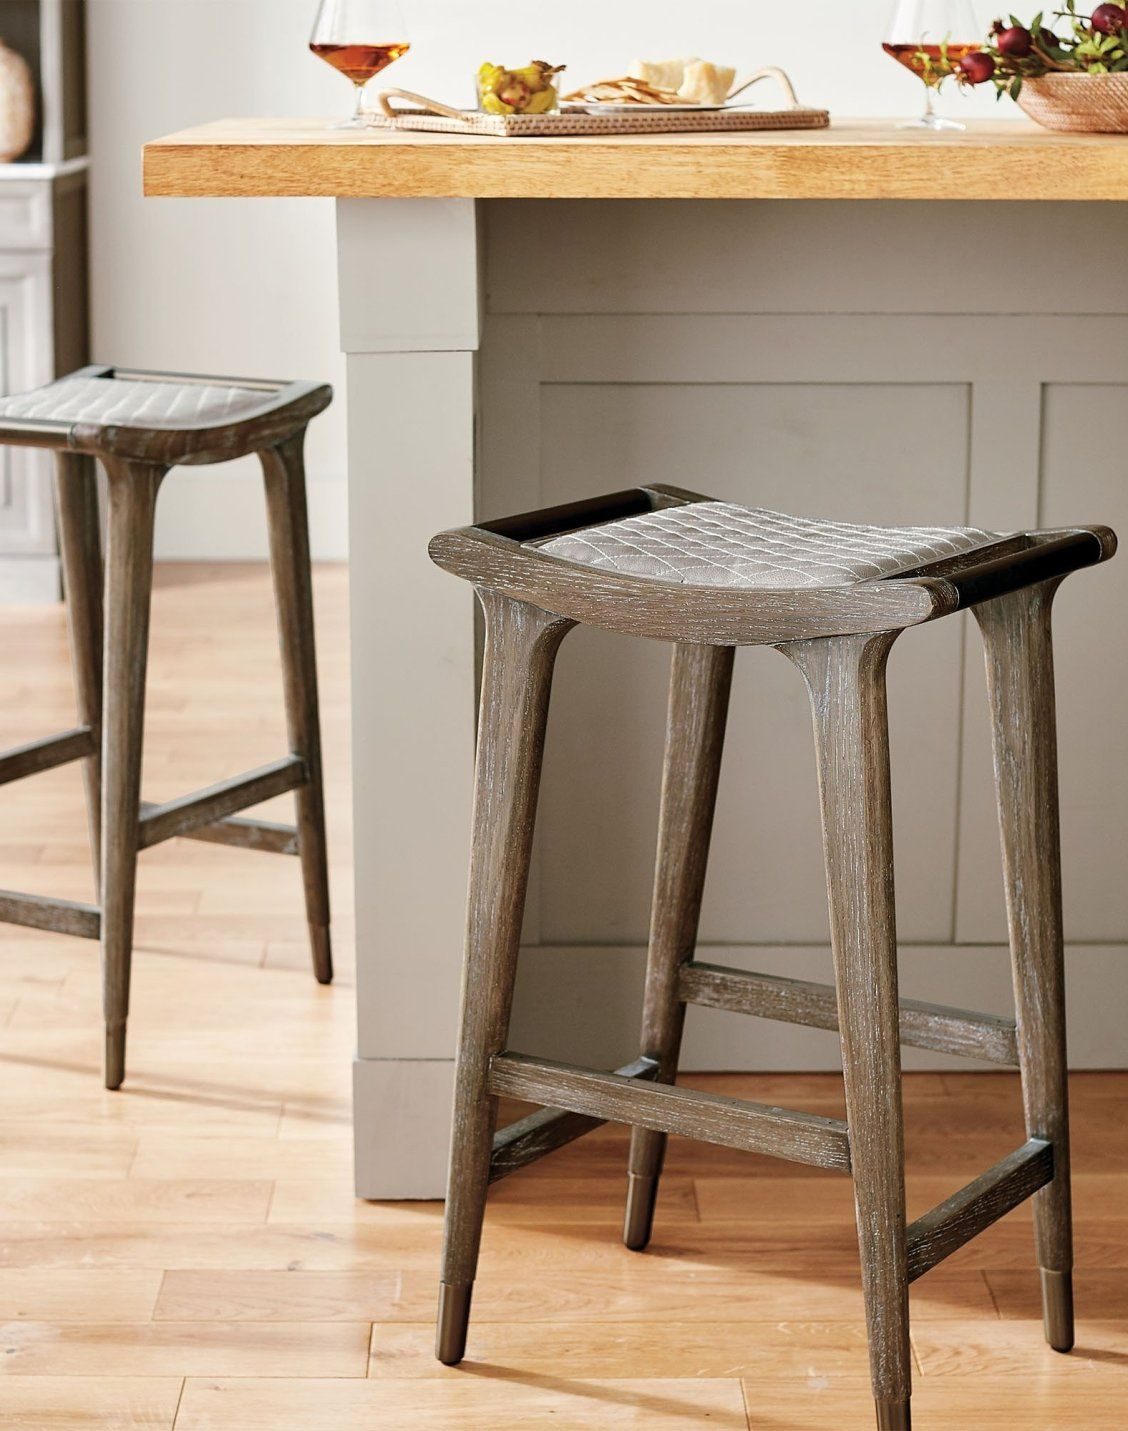 Russo Bar Counter Stool Frontgate Counter Stools Rattan Counter Stools Counter Stools Backless